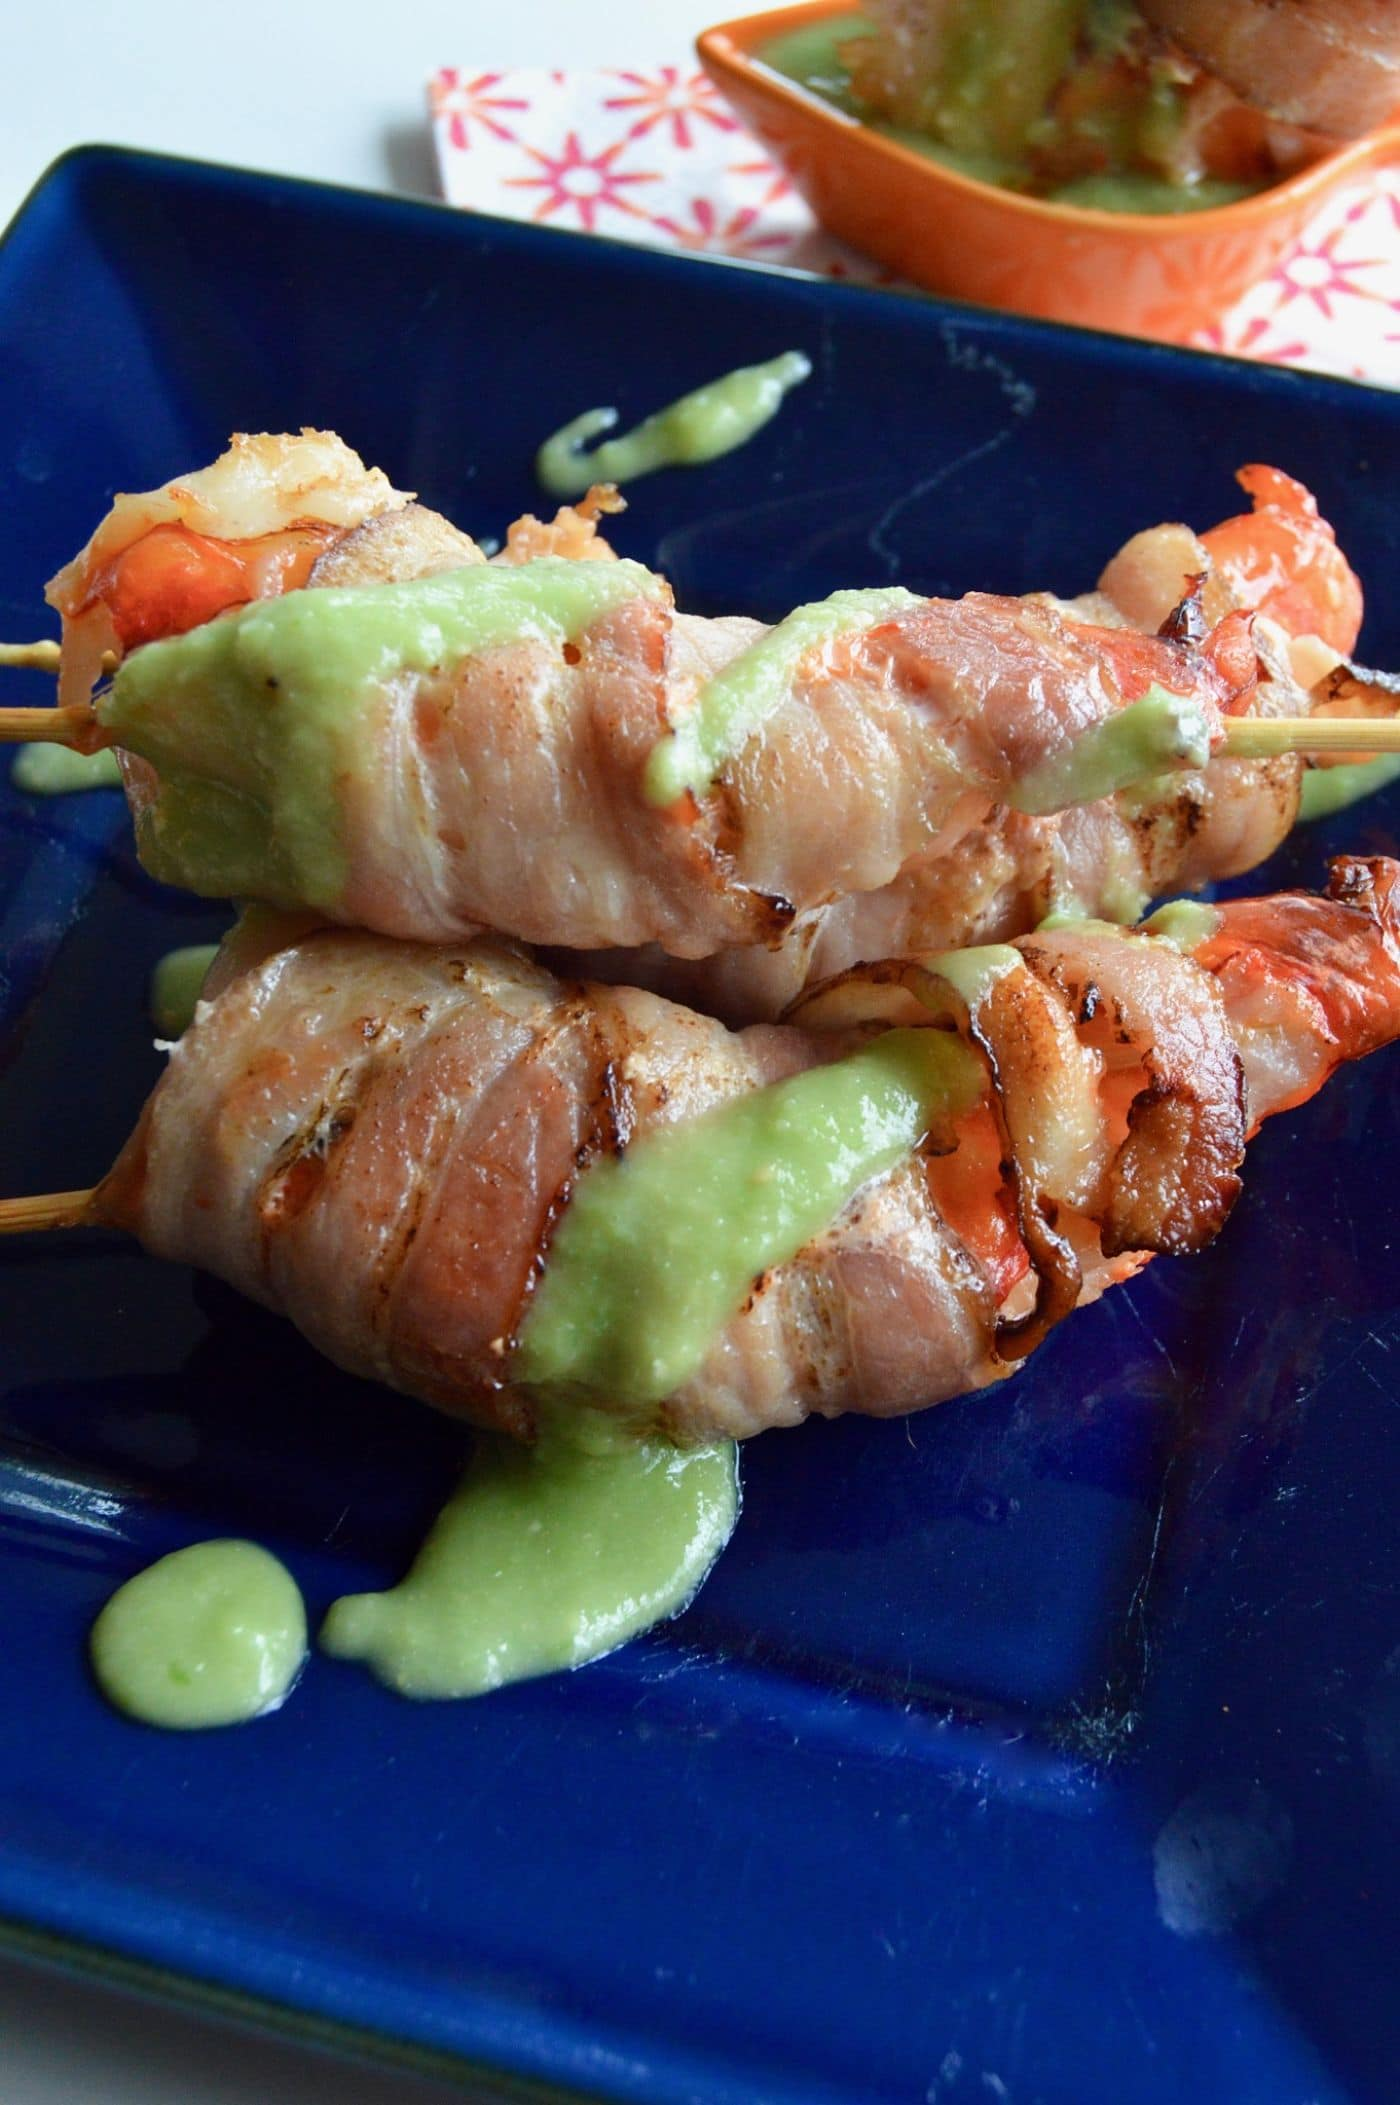 These Bacon Wrapped Shrimp with Avocado dip are 3 bite appetizers that will go quickly at any party! Succulent shrimp, wrapped in bacon broiled to perfection then served on skewers with a healthy avocado salsa!